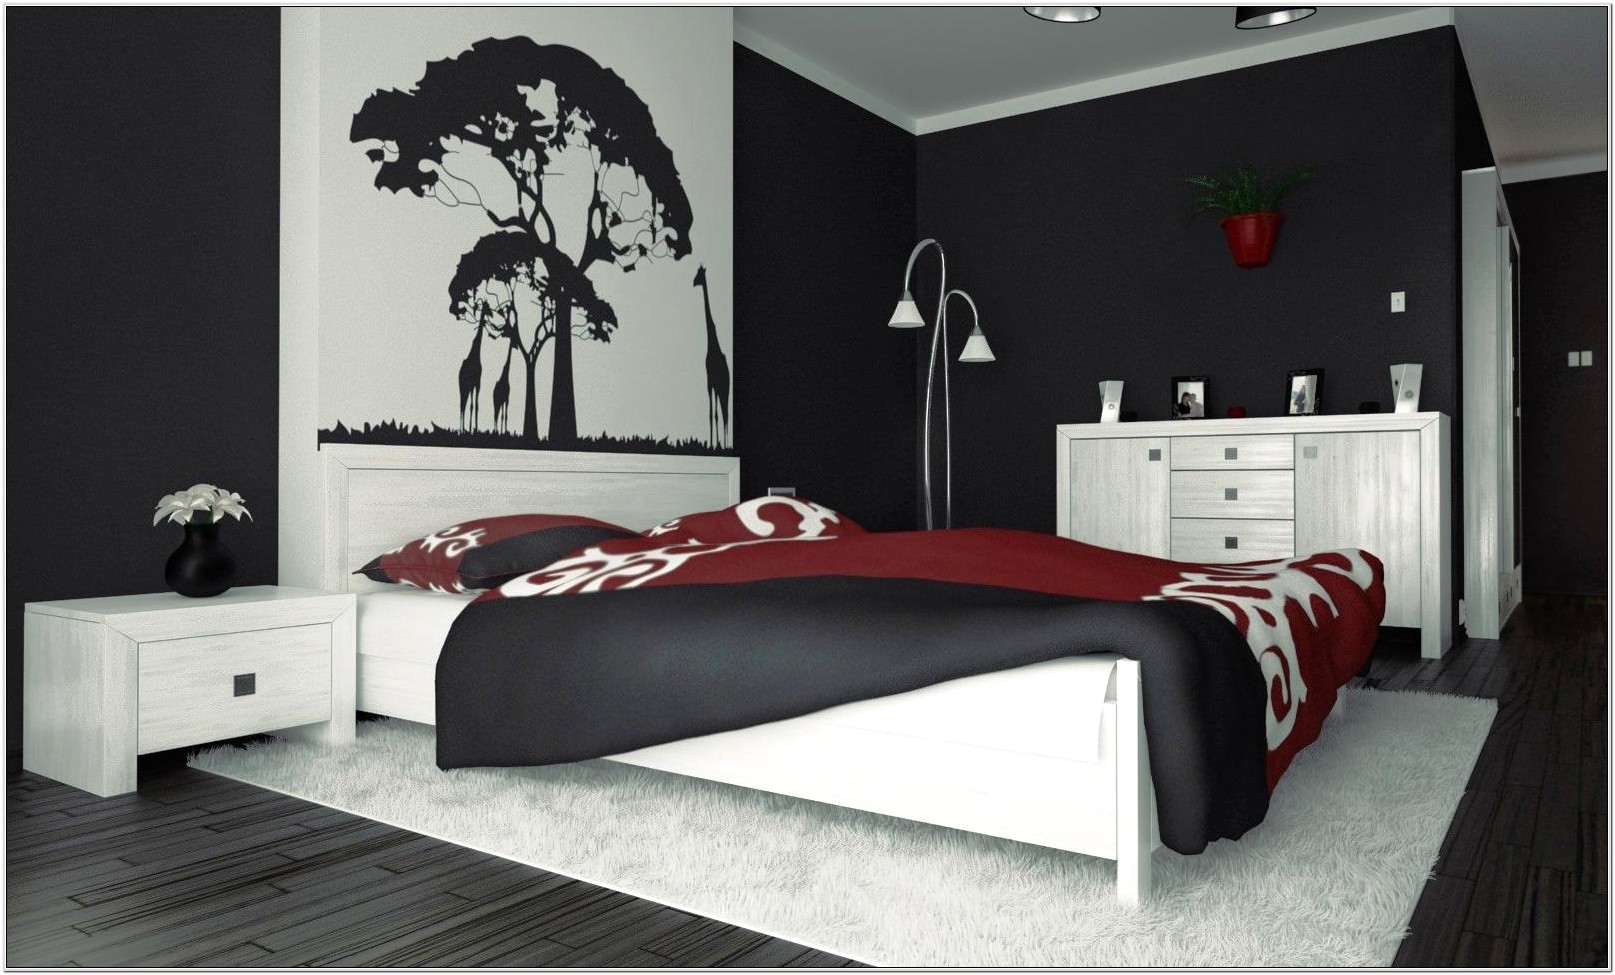 Decoration Ideas For Bedrooms Walls